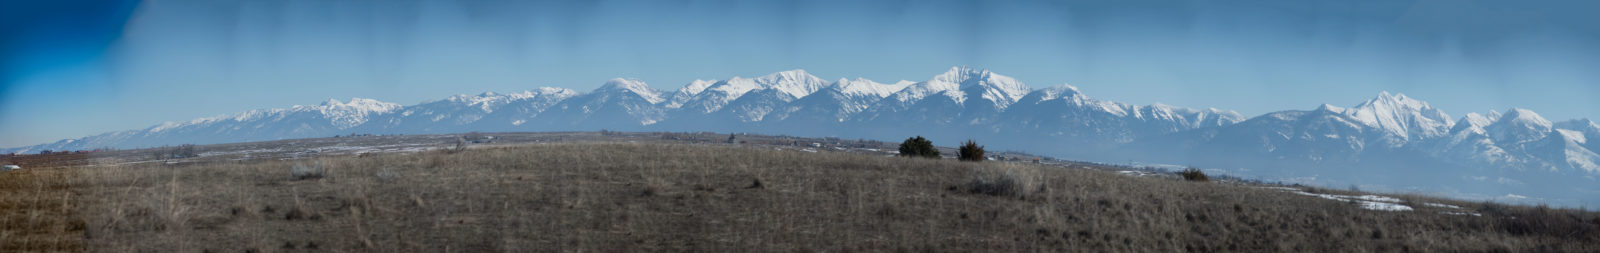 Panoramic View of the Mission Mountains